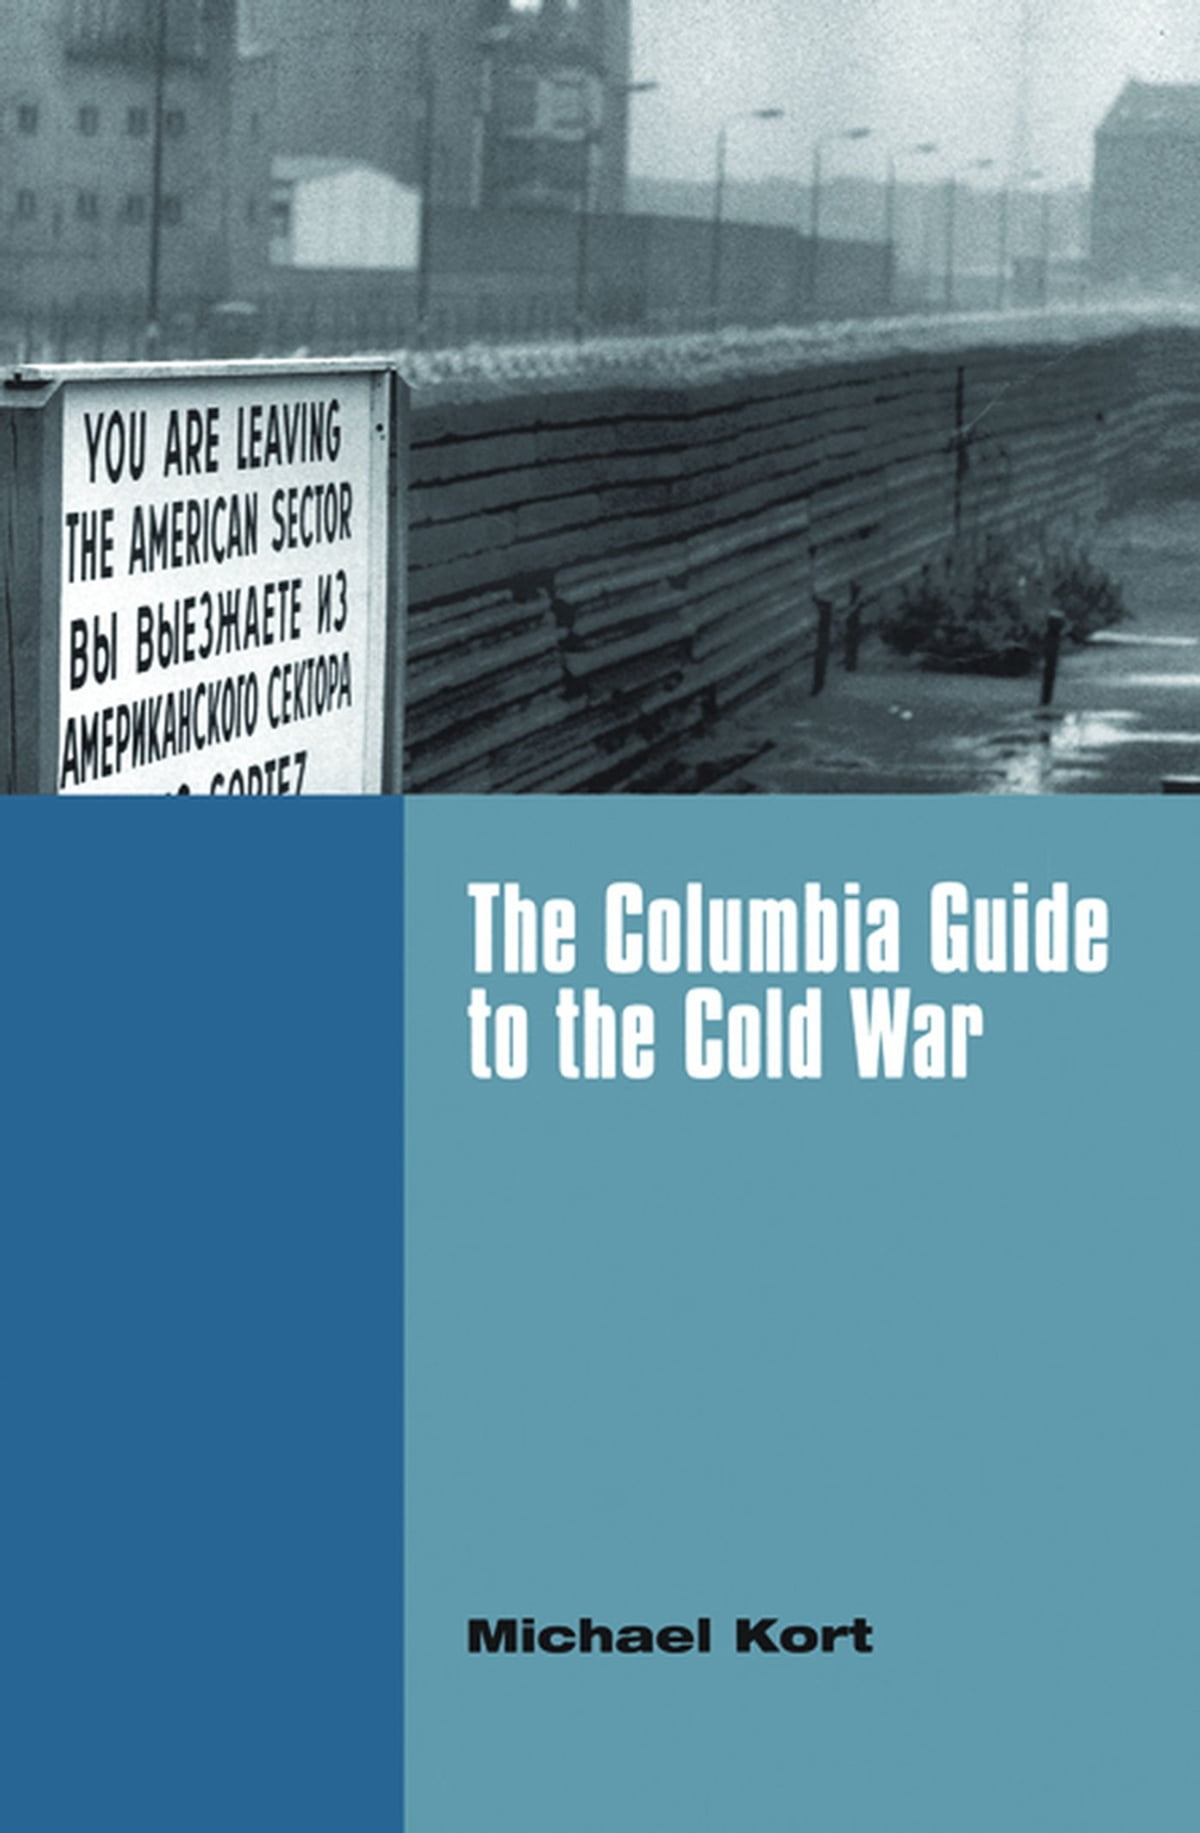 The Columbia Guide To The Cold War Ebook By Michael Kort